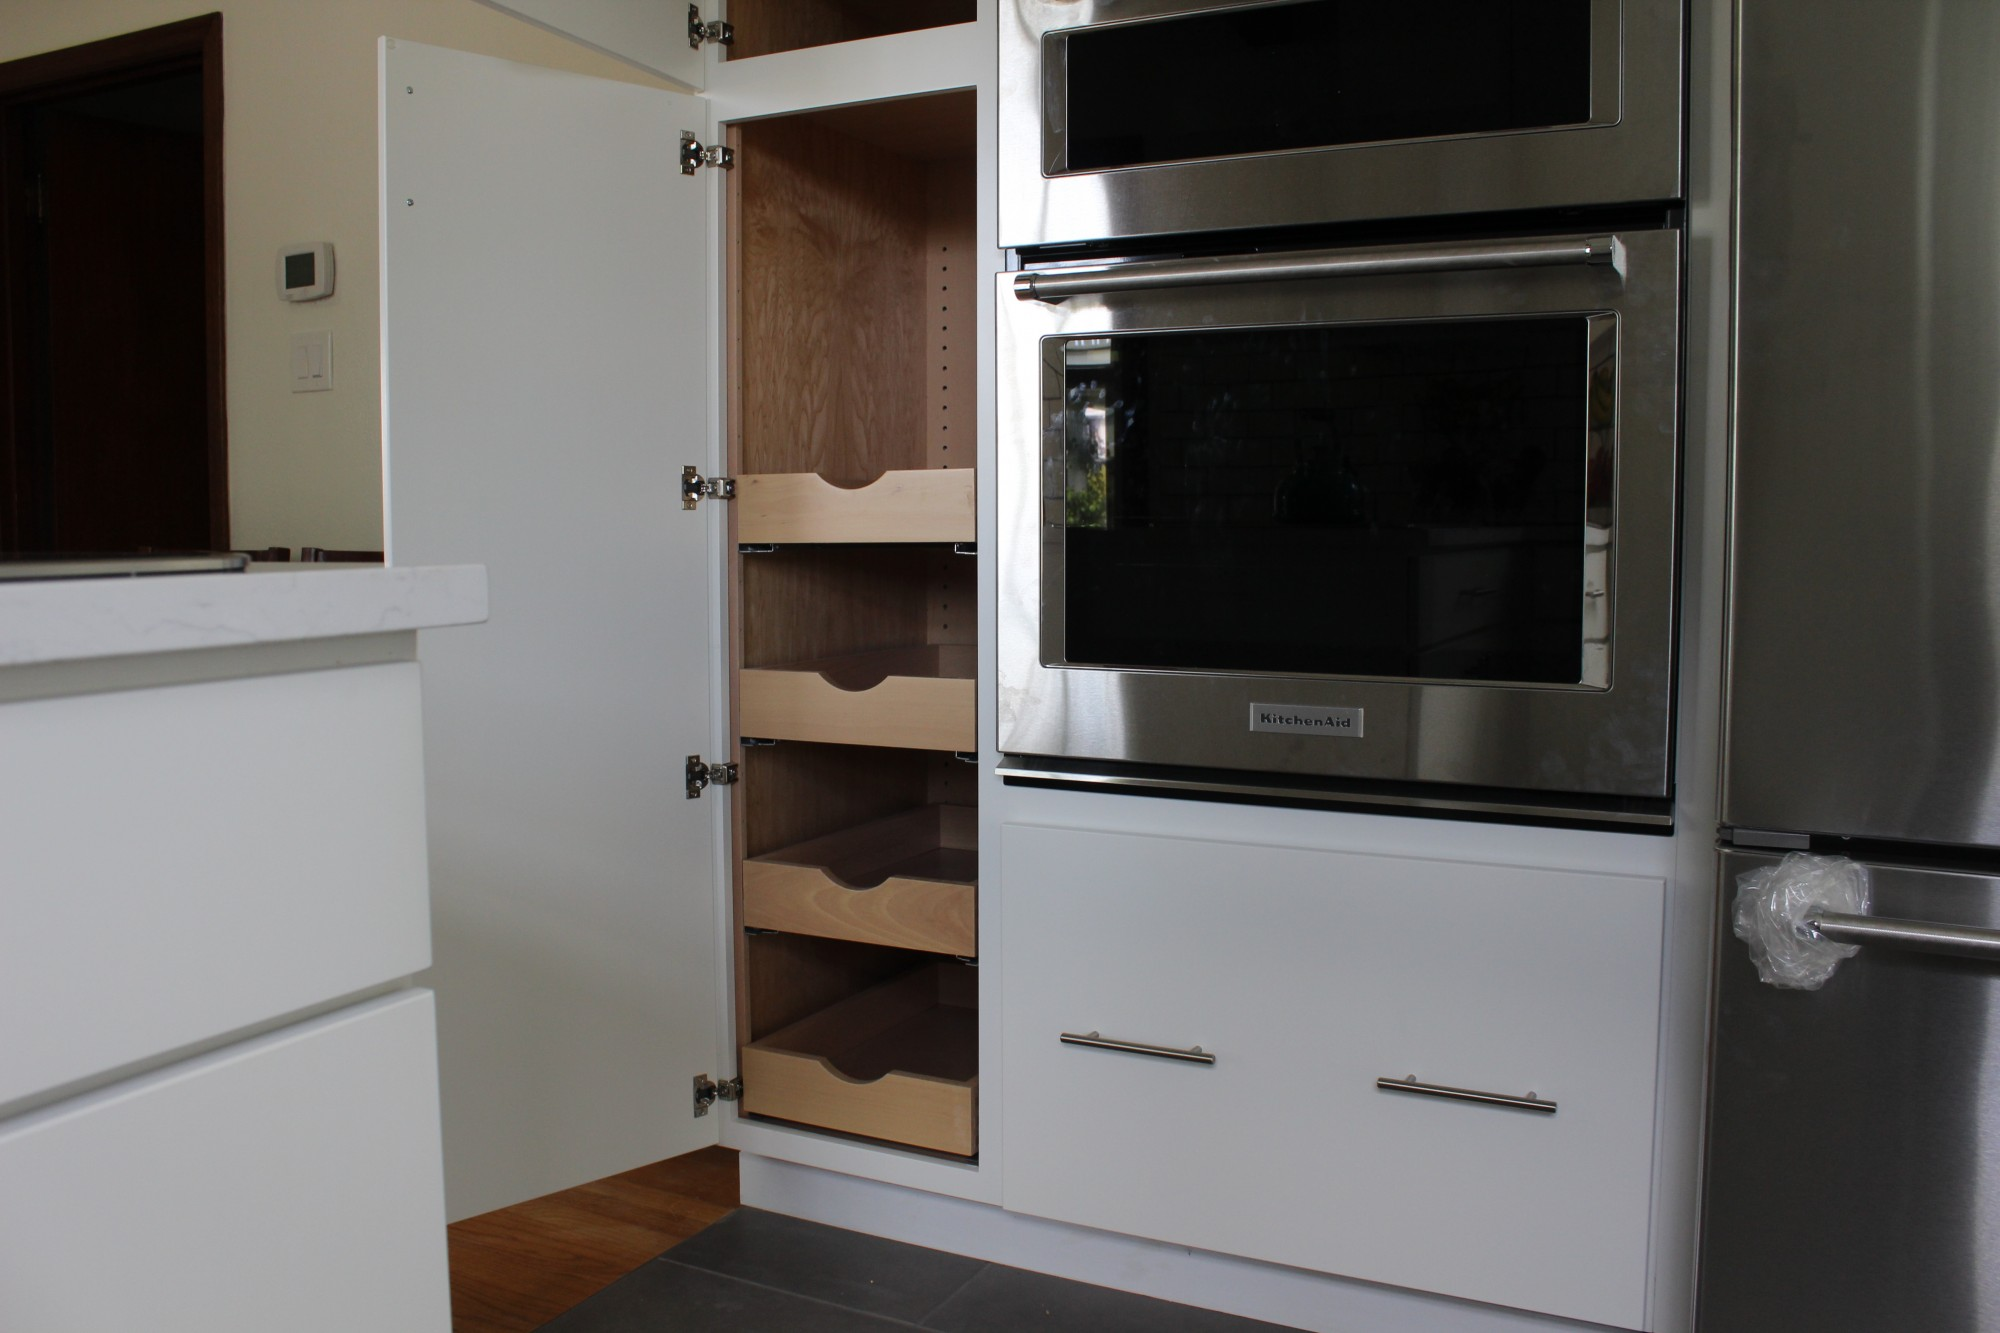 photo of roll out shelving in pantry cabinet